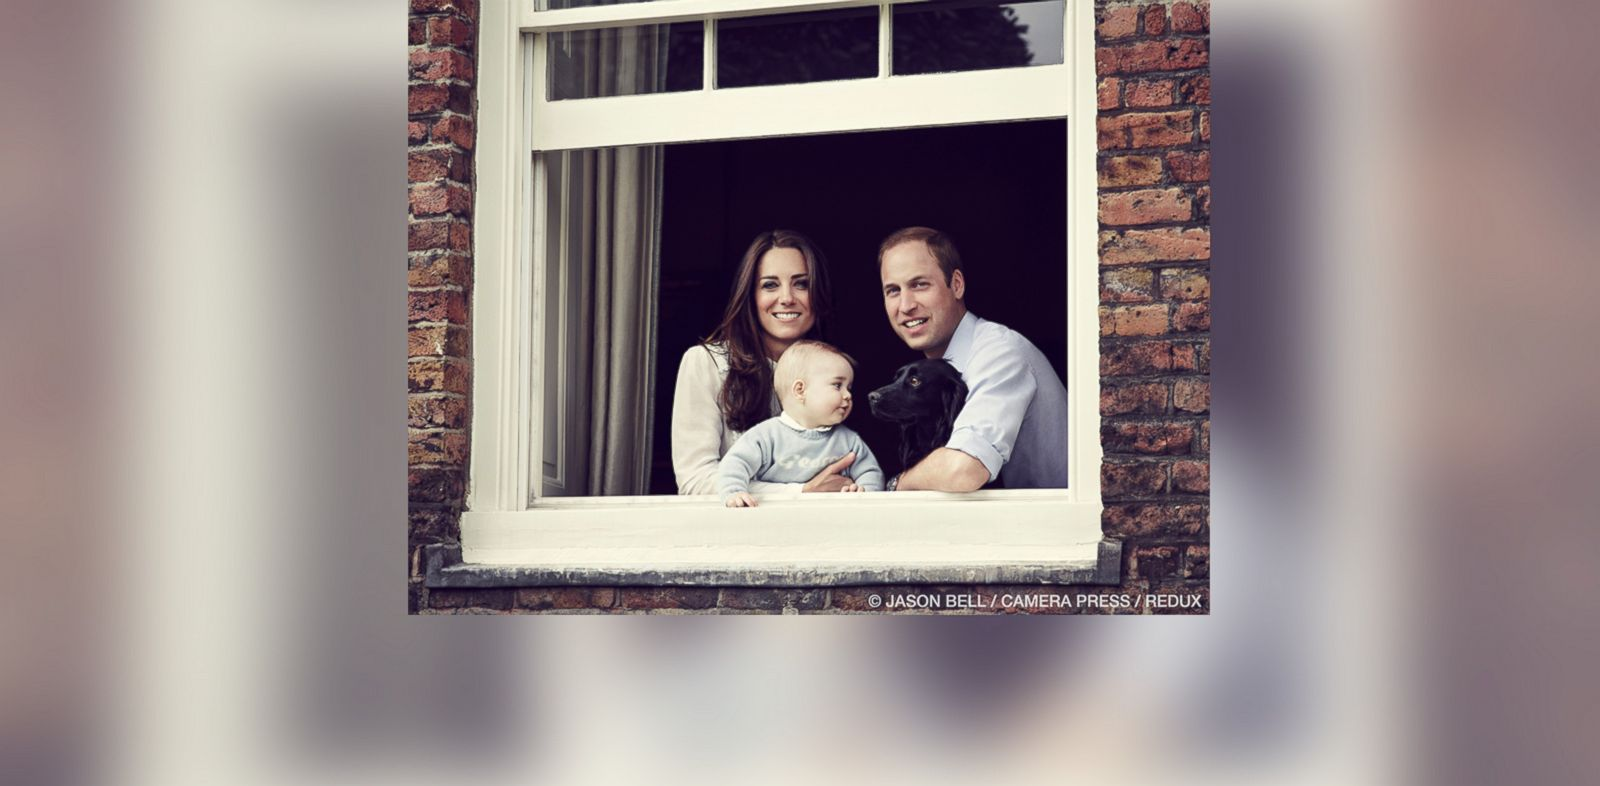 PHOTO: The Duke and Duchess of Cambridge with their son Prince George and dog Lupo photographed at Kensington Palace, London, March 2014.